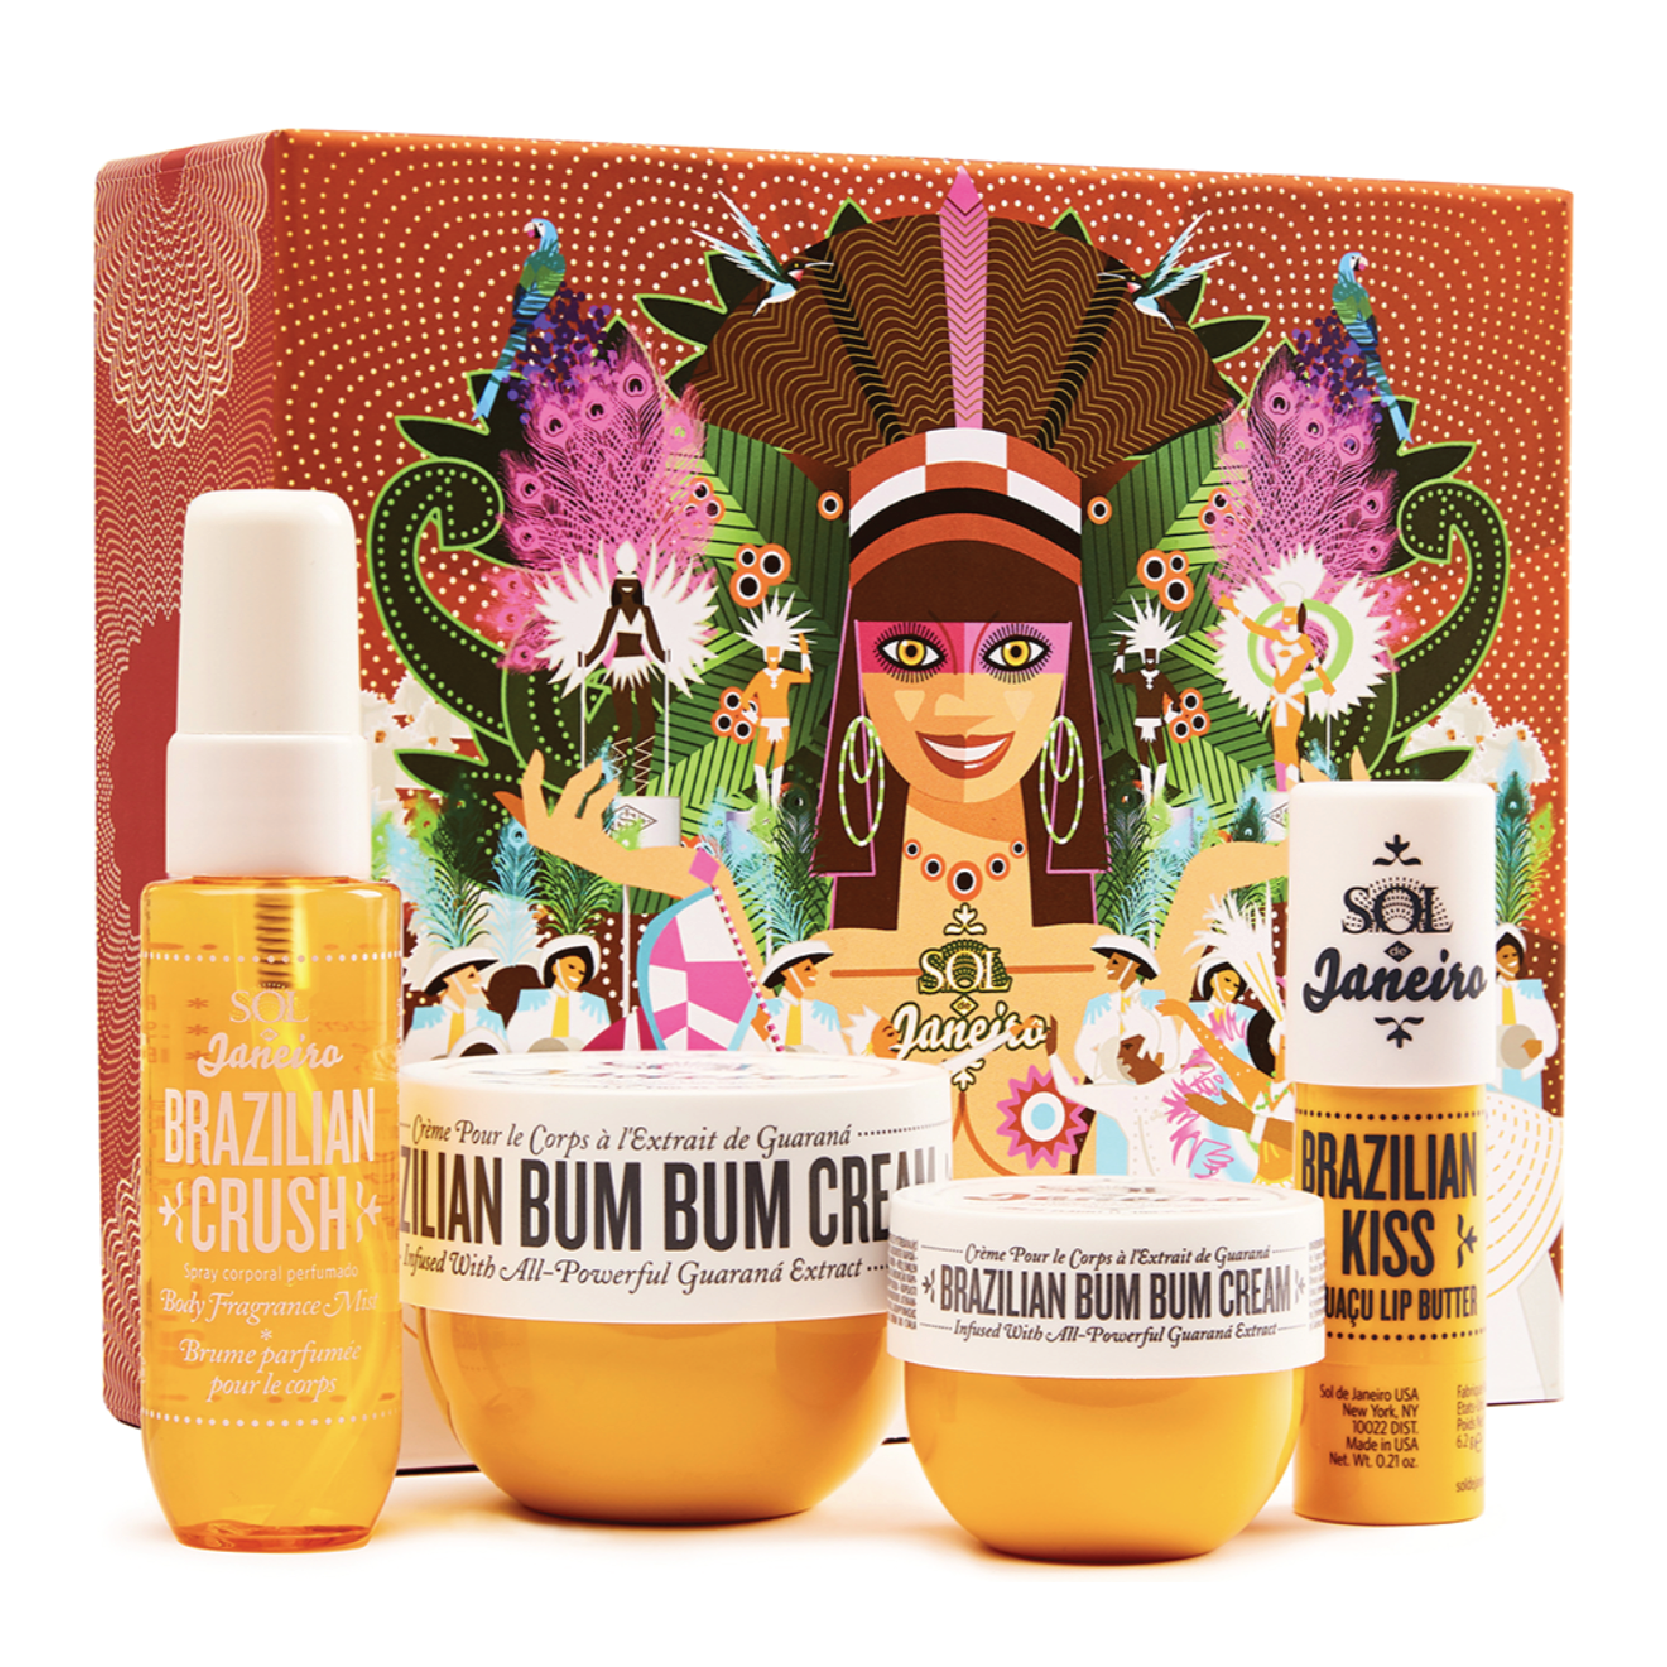 Sol de Janeiro Carnival Magic Set - $38 at Sol de JaneiroI haven't stopped hearing amazing things about Sol de Janeiro's Bum Bum cream and this is a fantastic set to try them out in. Perfect for someone who lives in colder weather and lives for body lotion.